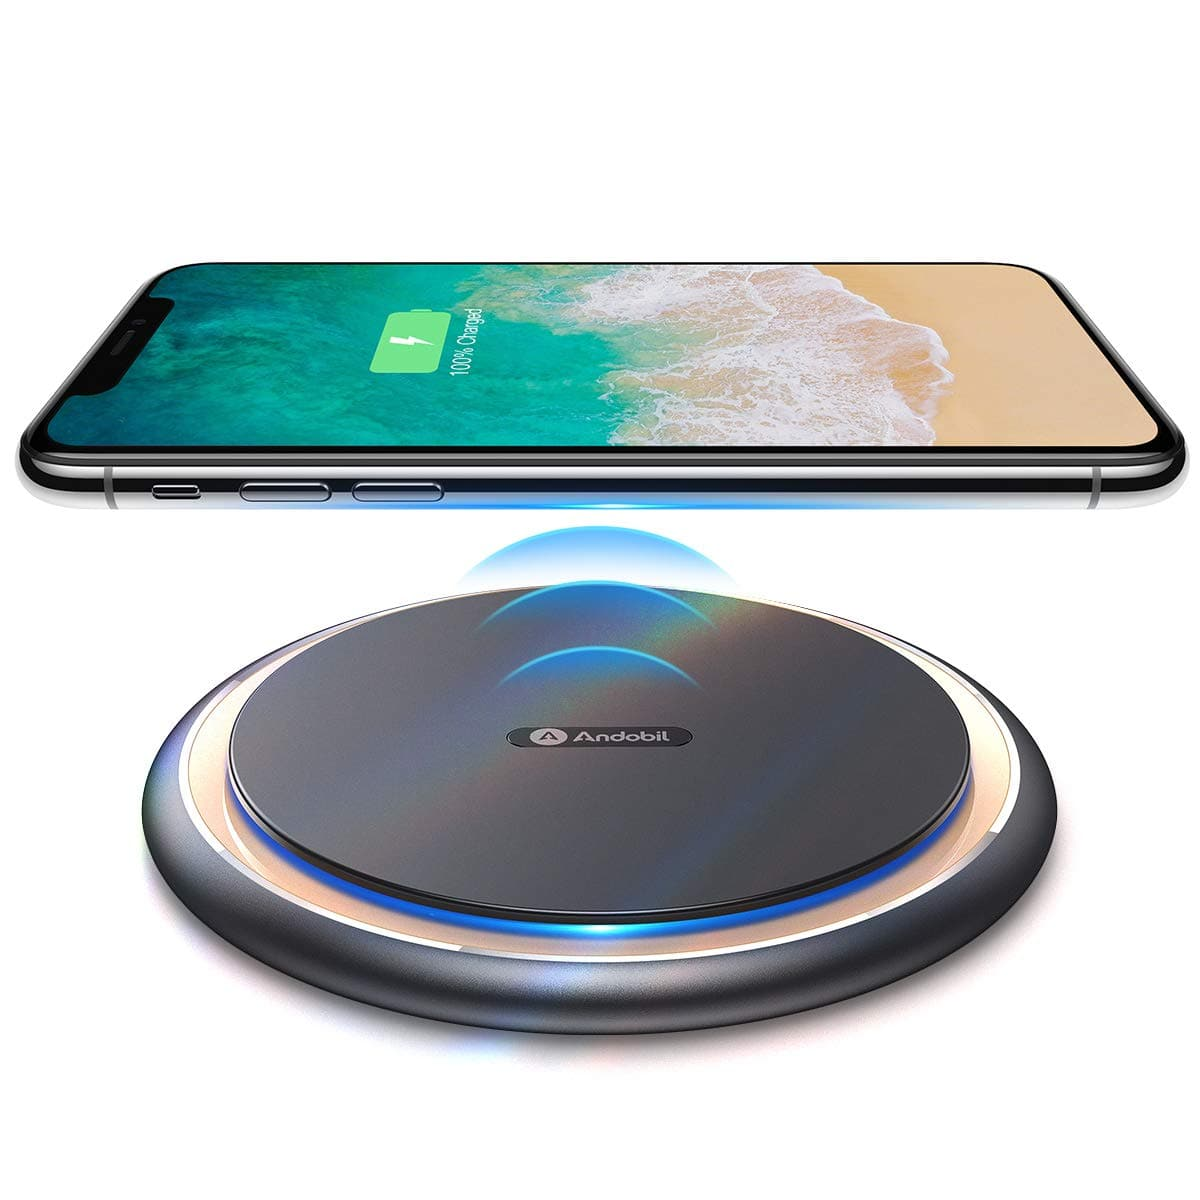 Andobil Boost 15W Fast Wireless Charger, USB-C Qi Certified For Phone $23.99